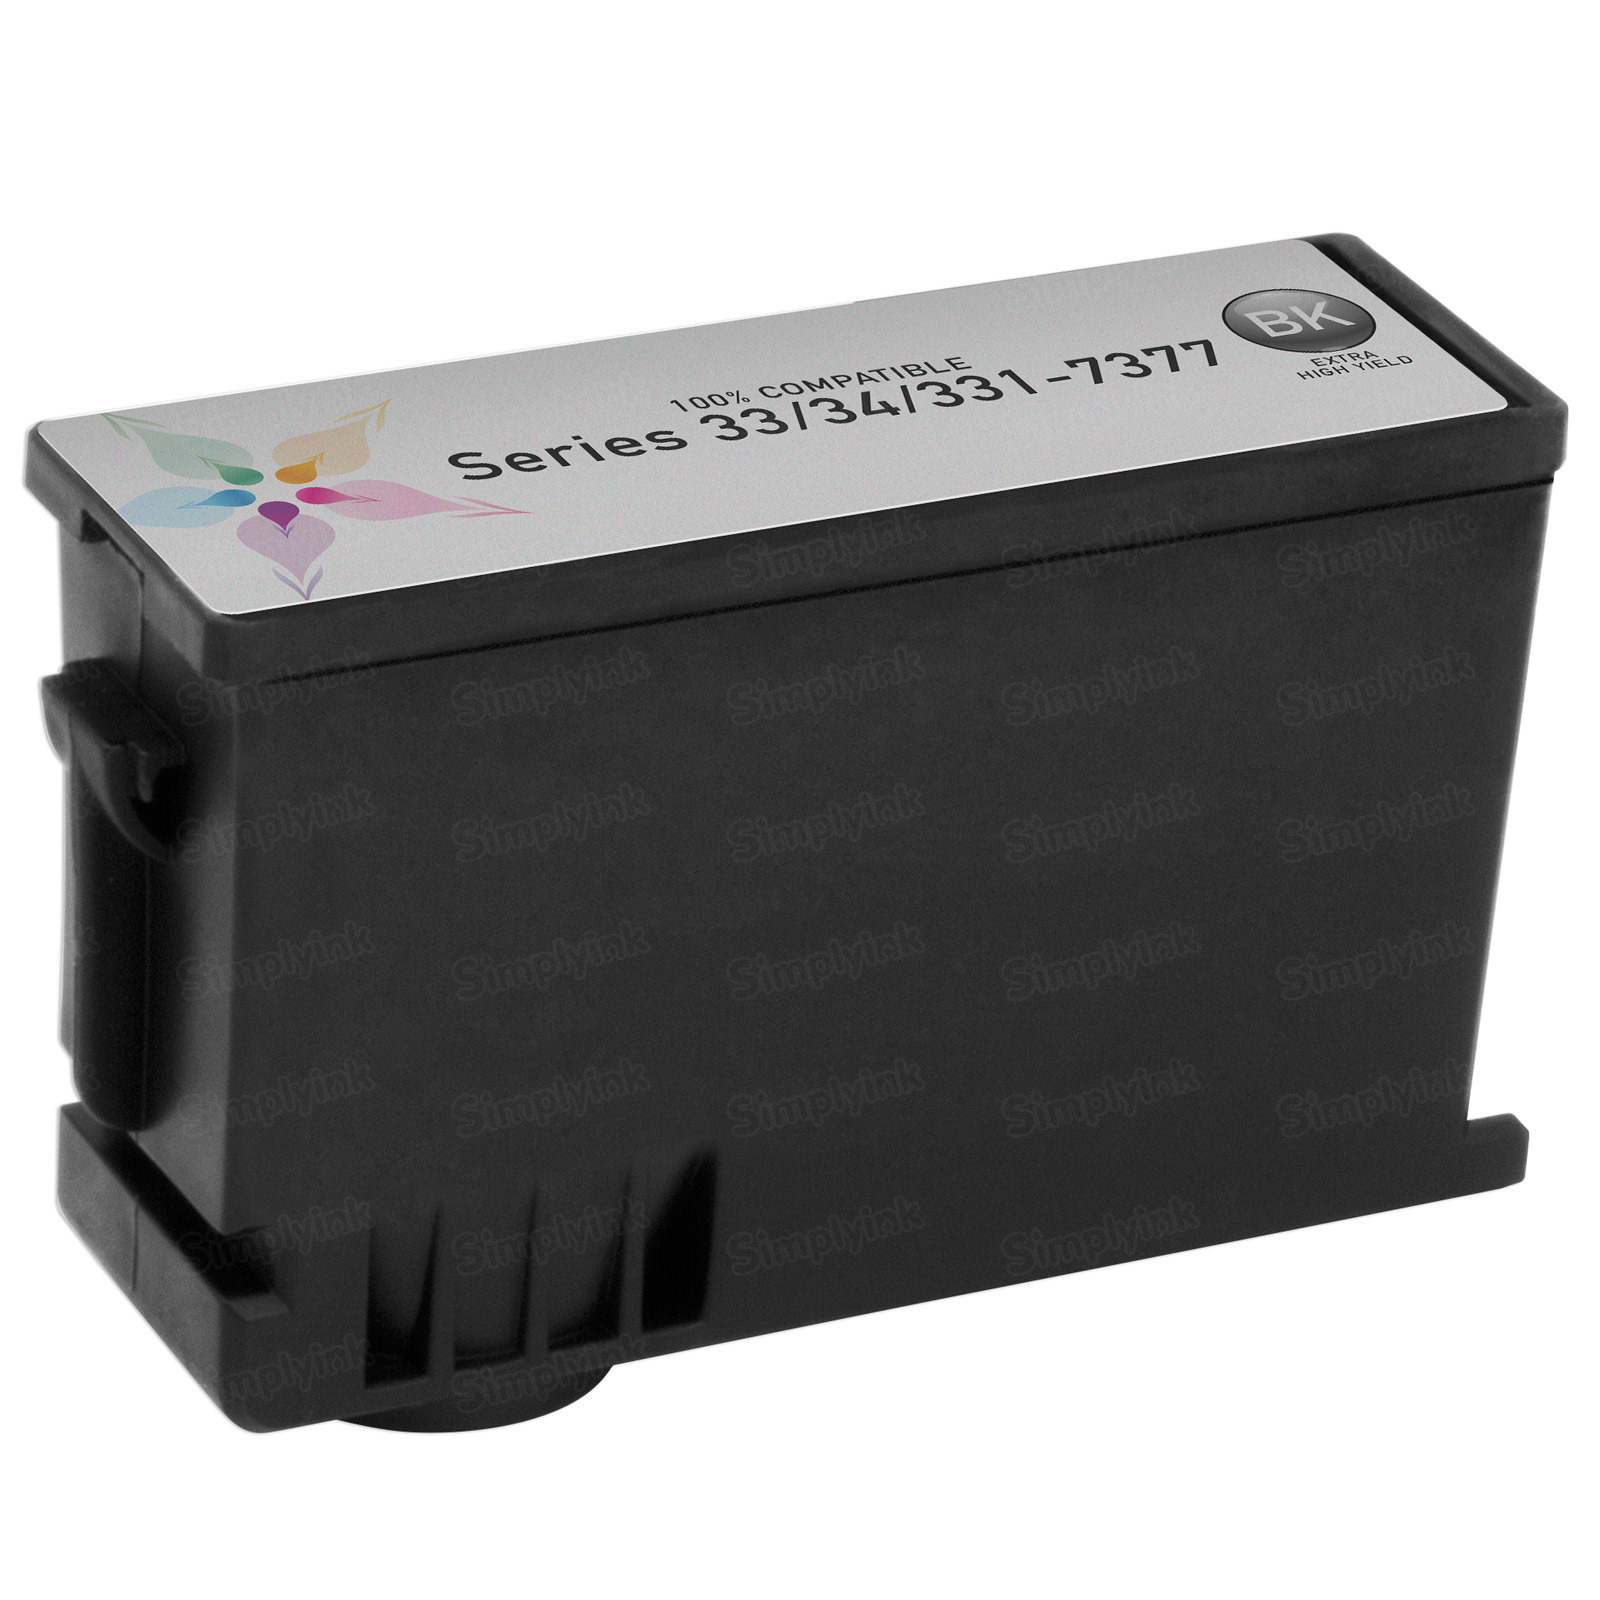 Compatible Ink Cartridge for Dell 331-7377 Extra HY Black Series 33/34